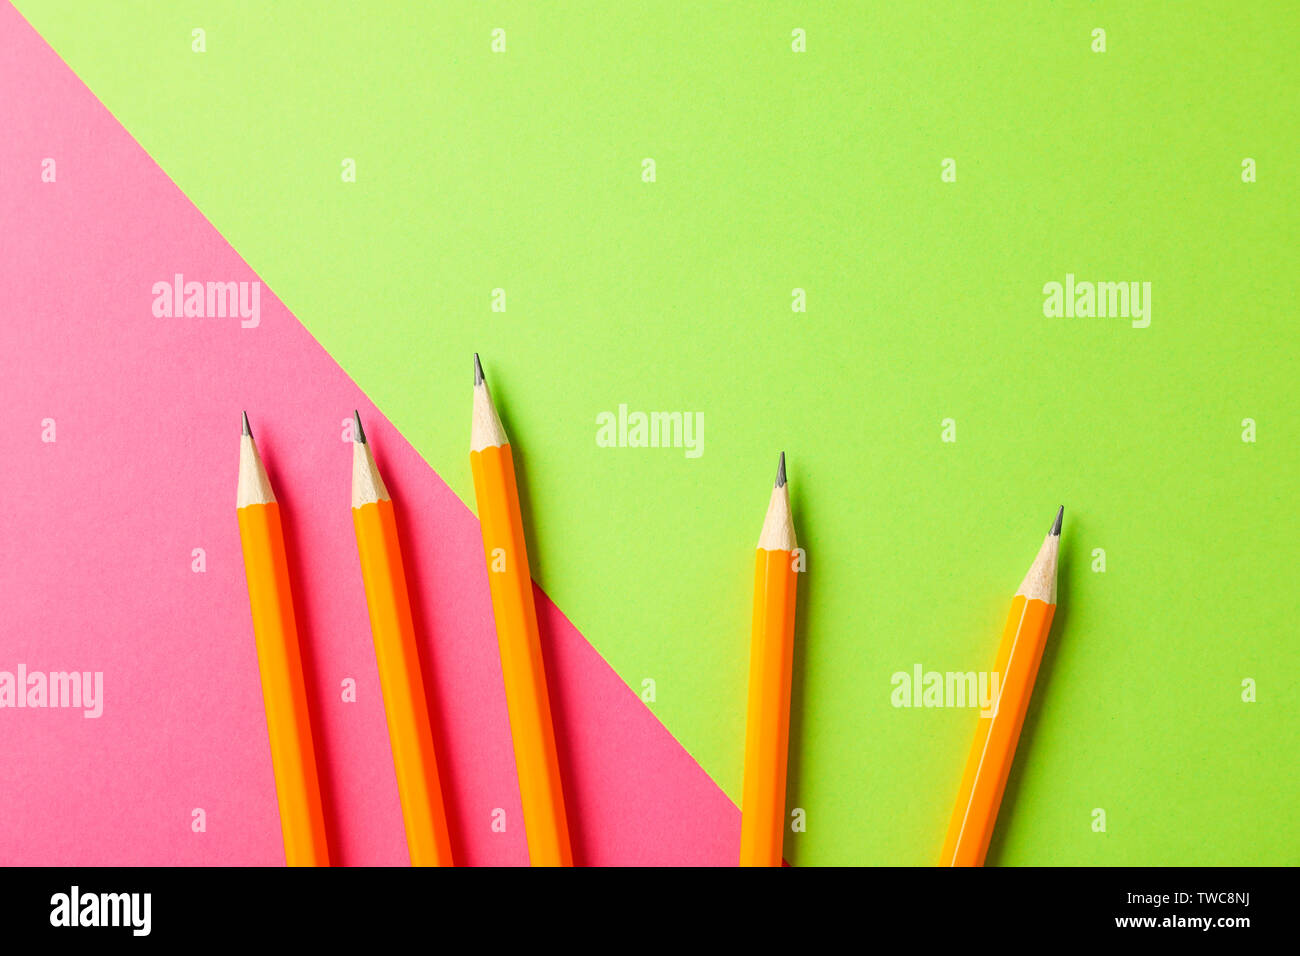 Pencils on two tone background, space for text - Stock Image